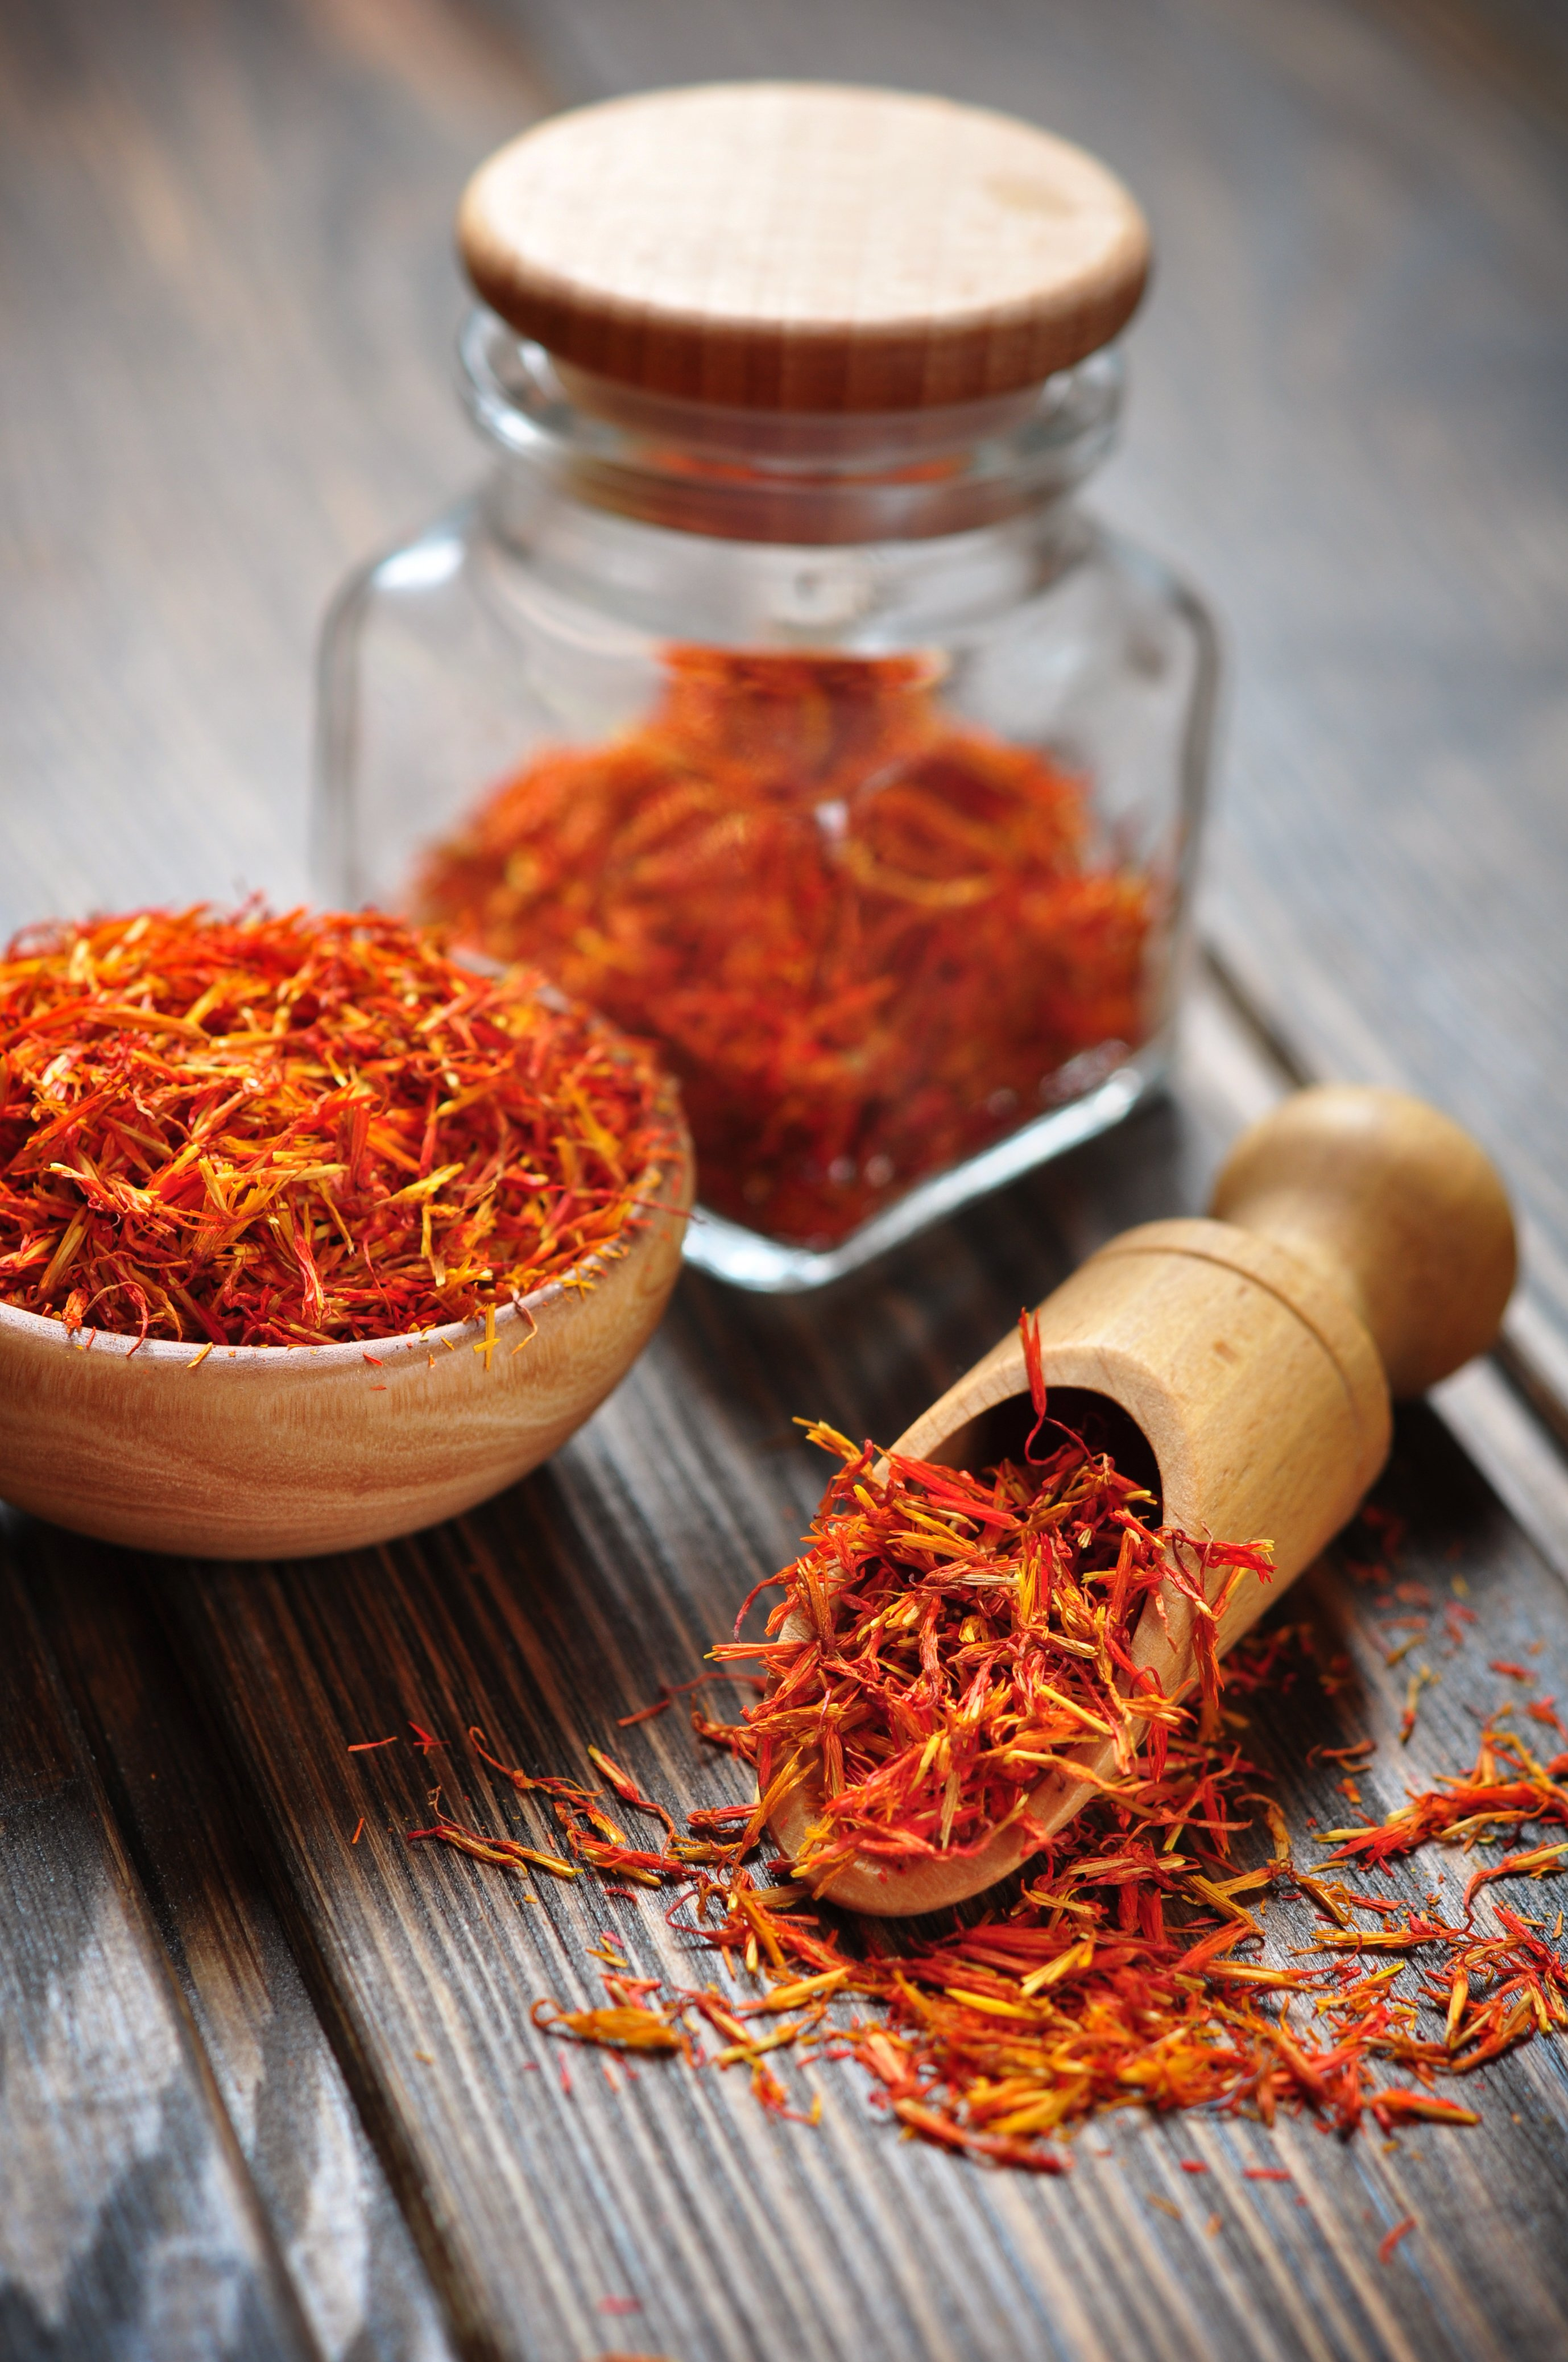 Quick Guide to Every Herb and Spice in the Cupboard | Kitchn